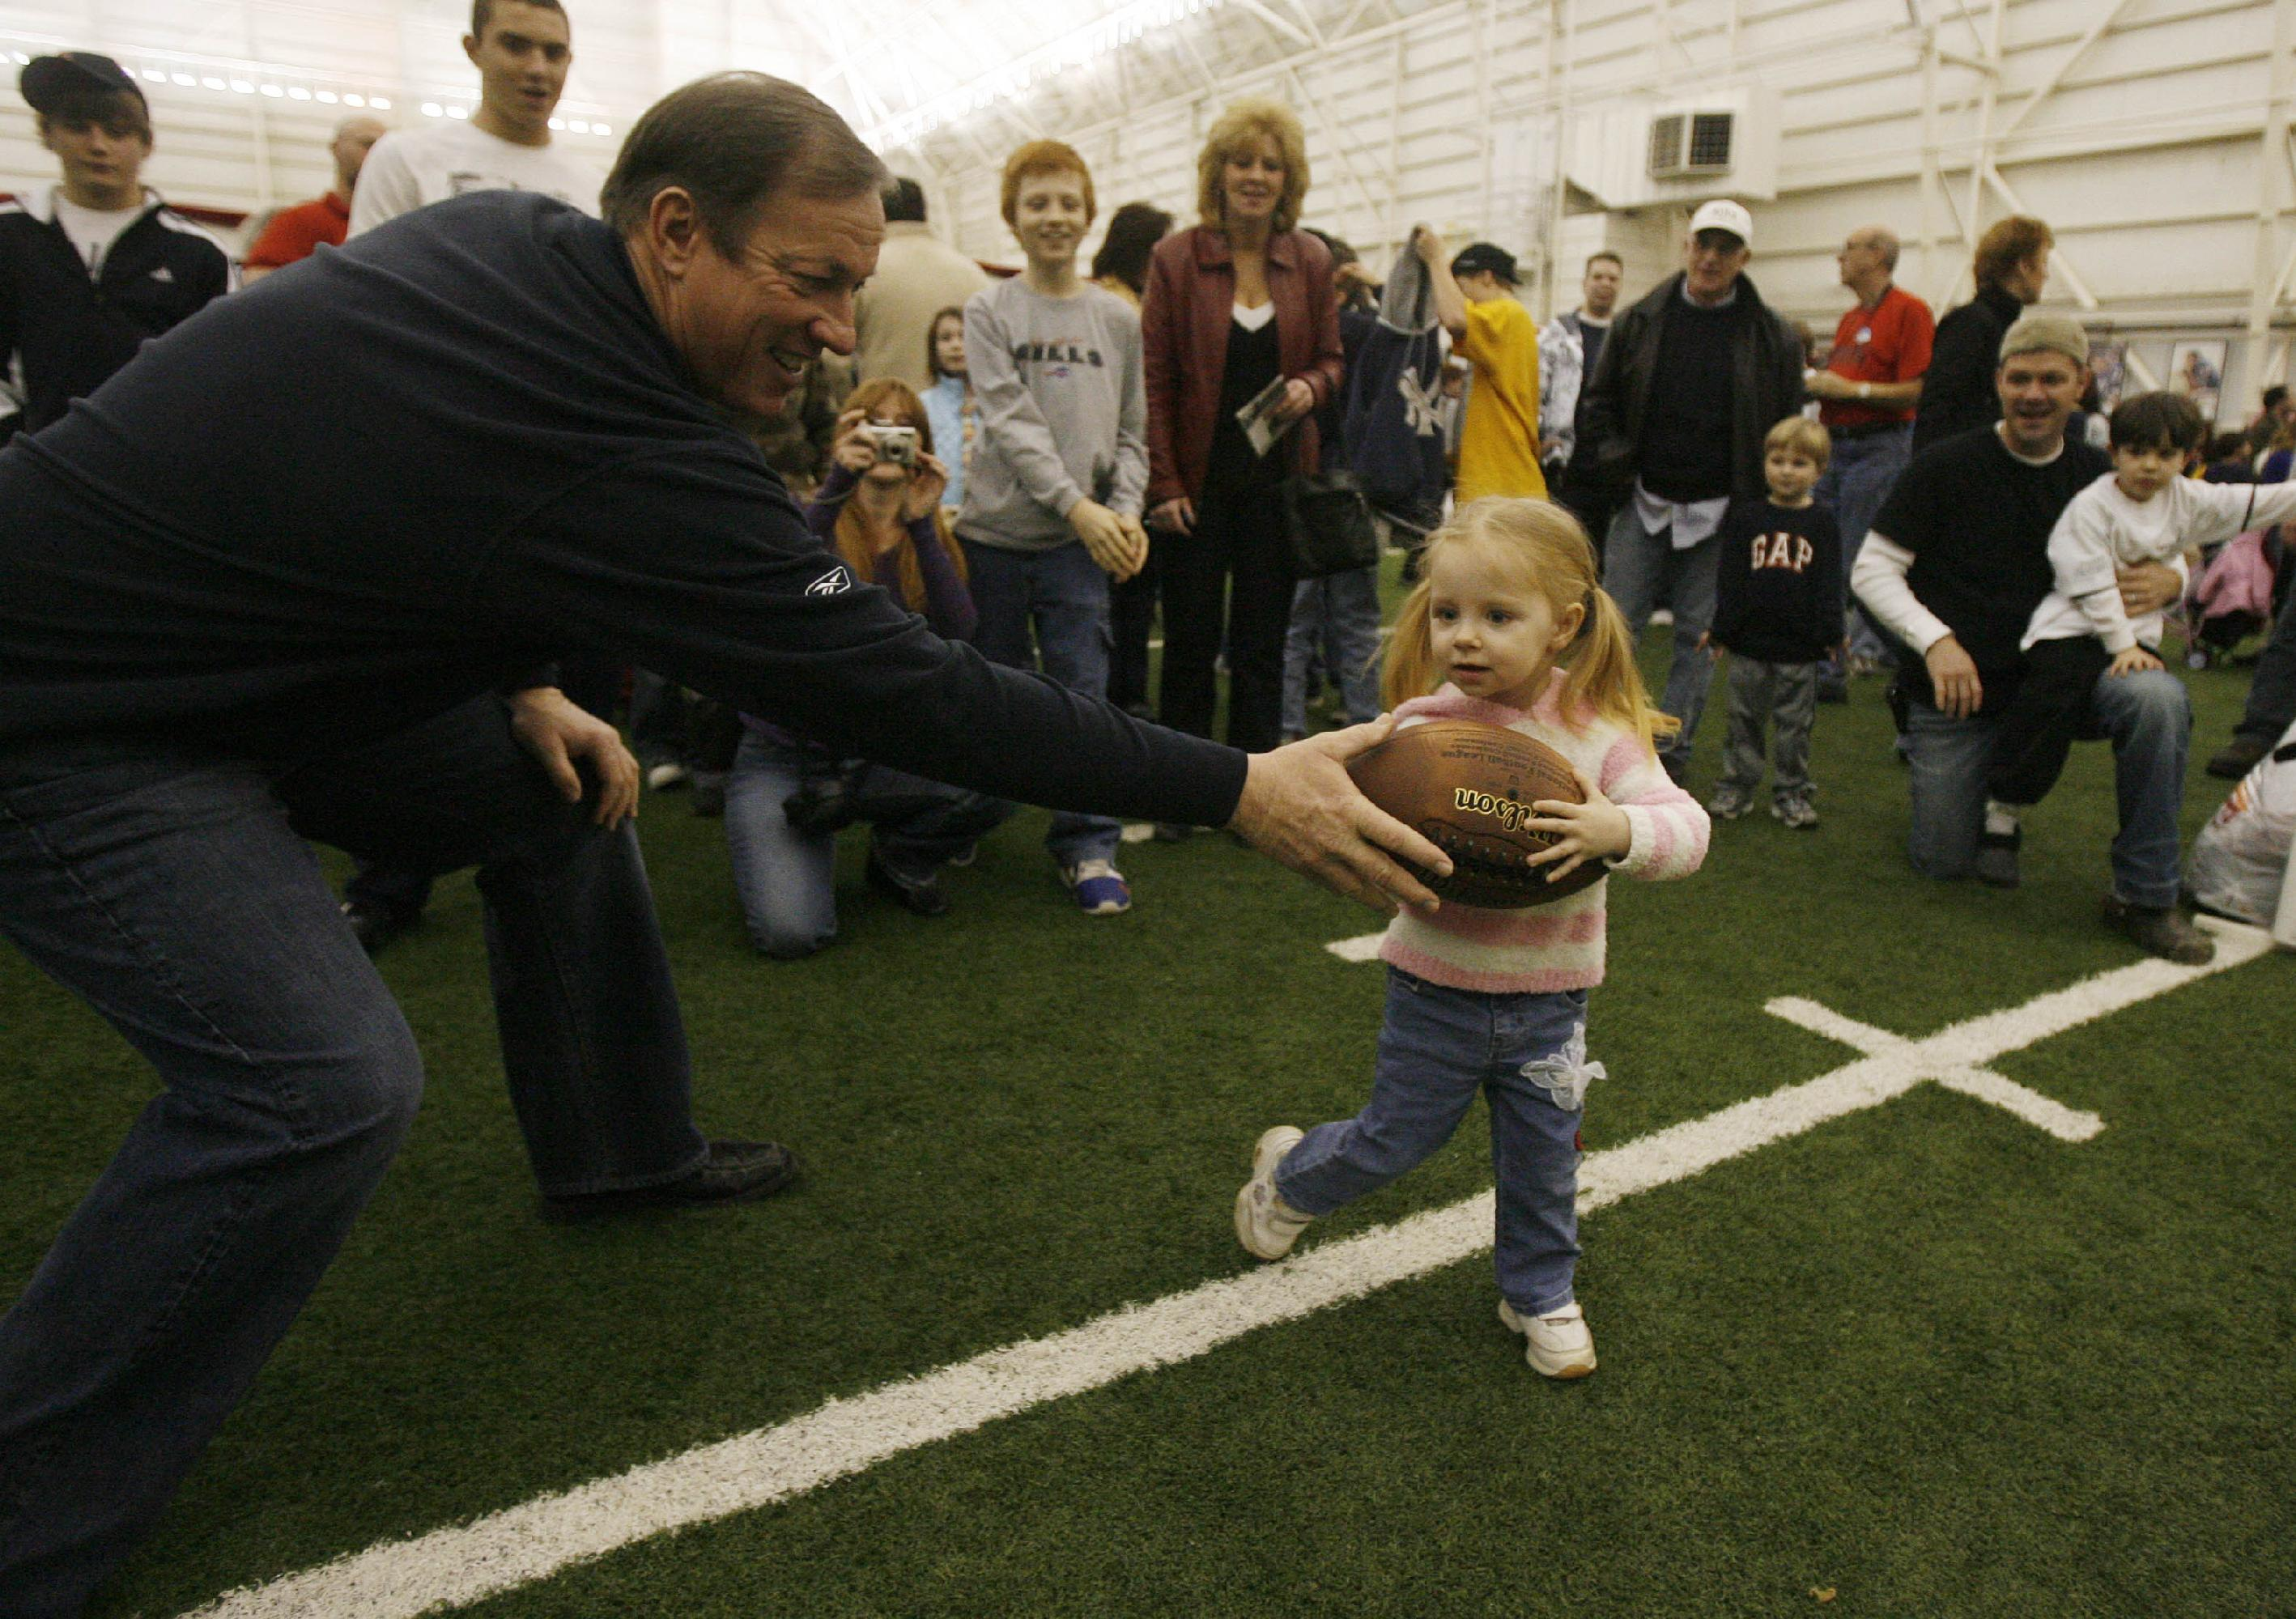 Buffalo Bills Hall of Fame Quarterback Jim Kelly hands off to Tiffany Nowak, 2, during Hunter's Day of Hope festivities  on Feb. 14, 2009. This year's event takes place Saturday at ADPRO Sports Training Facility  at Ralph Wilson Stadium in Orchard Park. (Mark Mulville/Buffalo News file photo)